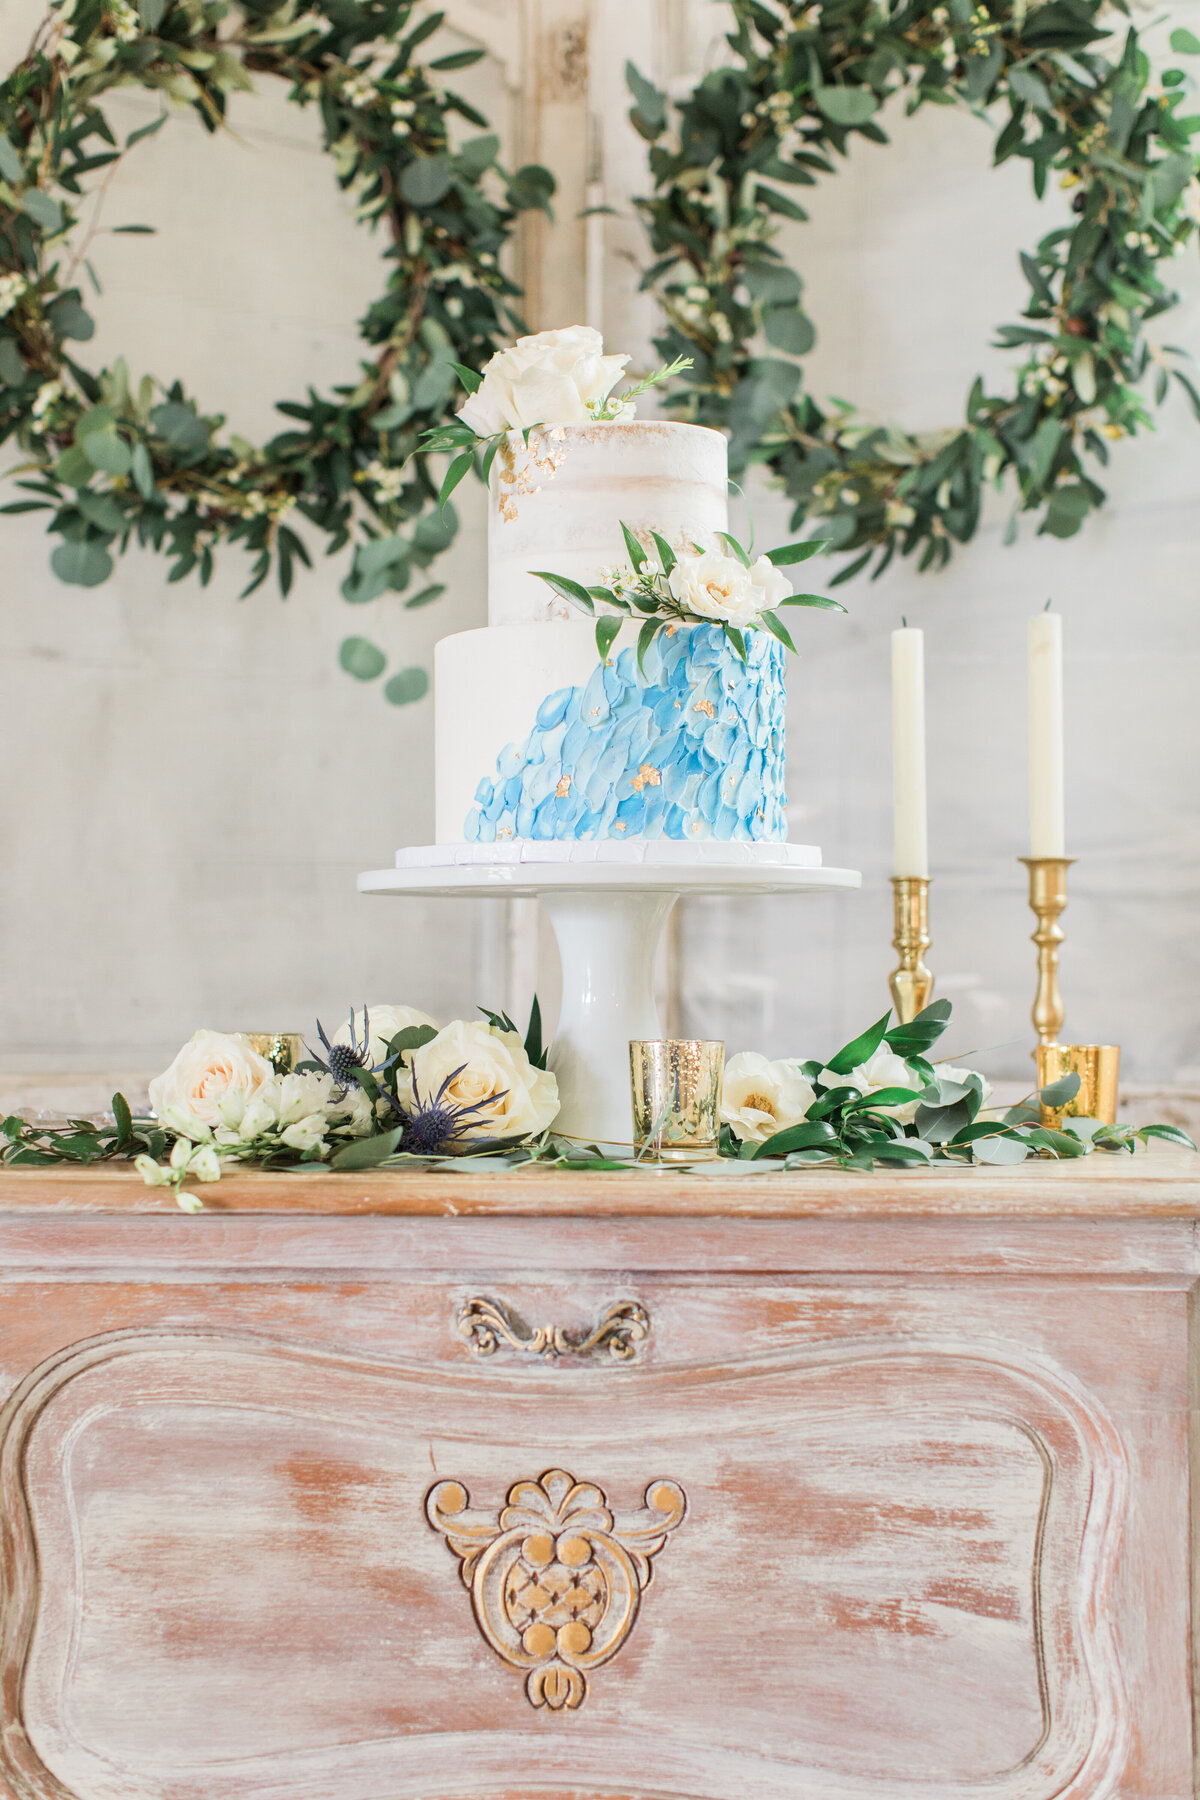 A blue and white wedding cake on a gorgeous vintage table, there are candlesticks in the background and the table is decorated with florals. There are two green wreaths in the background